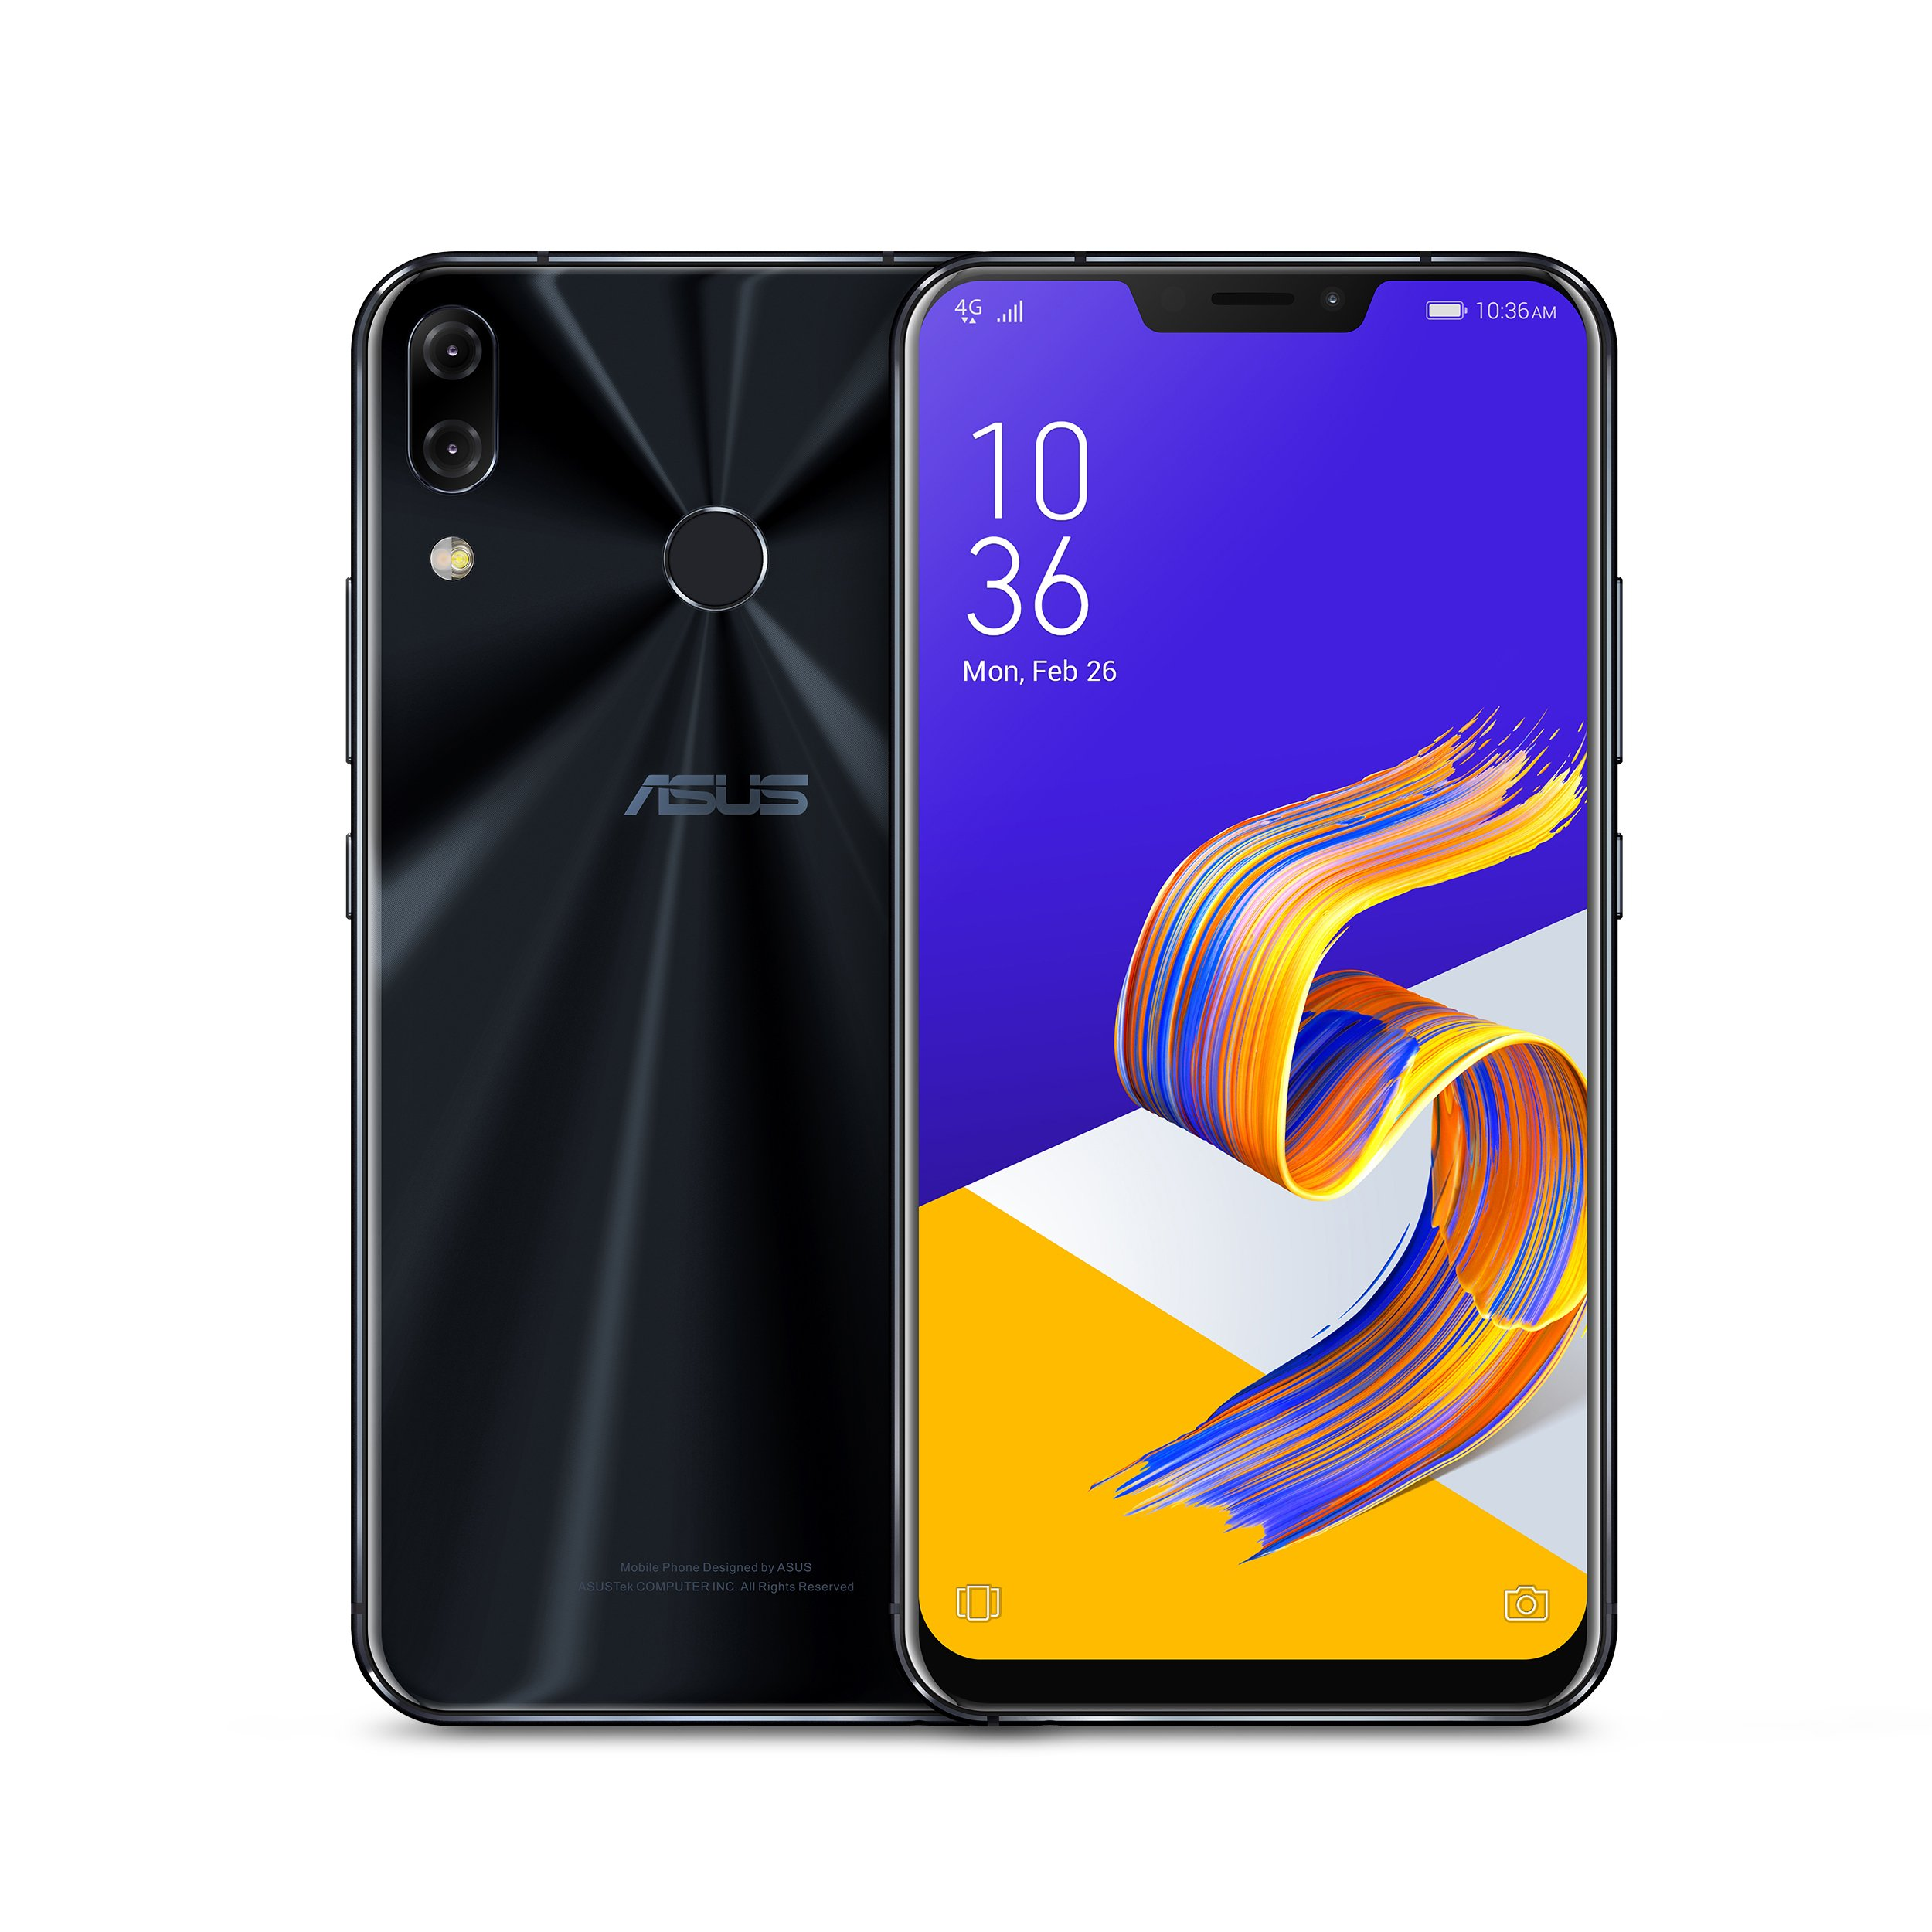 "CDM product ASUS ZenFone 5Z (ZS620KL-S845-6G64G) - 6.2"" FHD+ 2160x1080 display - 6GB RAM - 64GB storage - LTE Unlocked Dual SIM Cell Phone - US Warranty - Midnight Blue small thumbnail image"